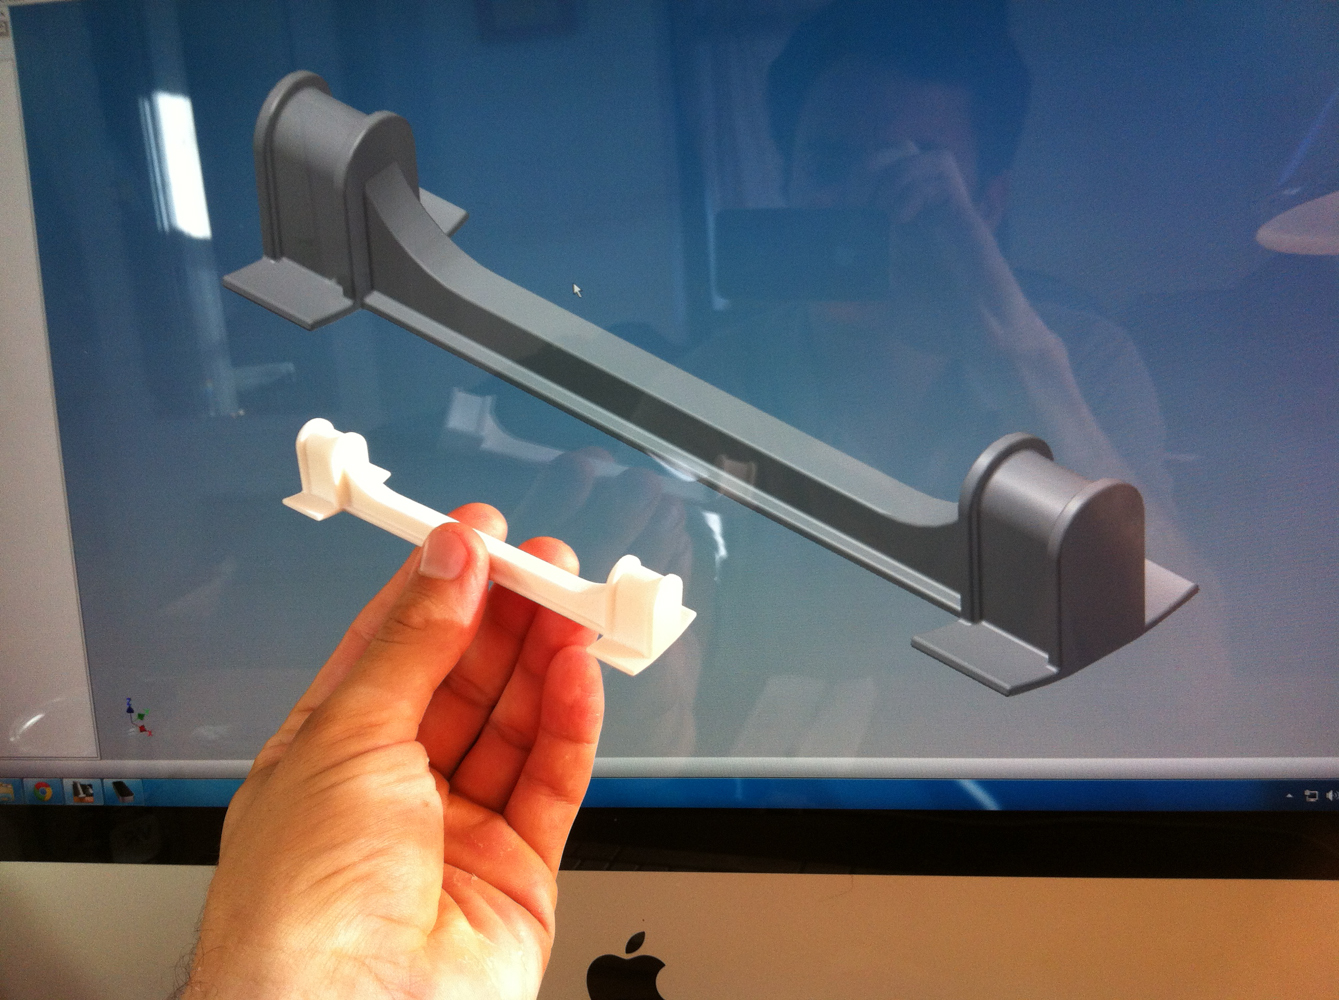 Inventor and Shapeways.